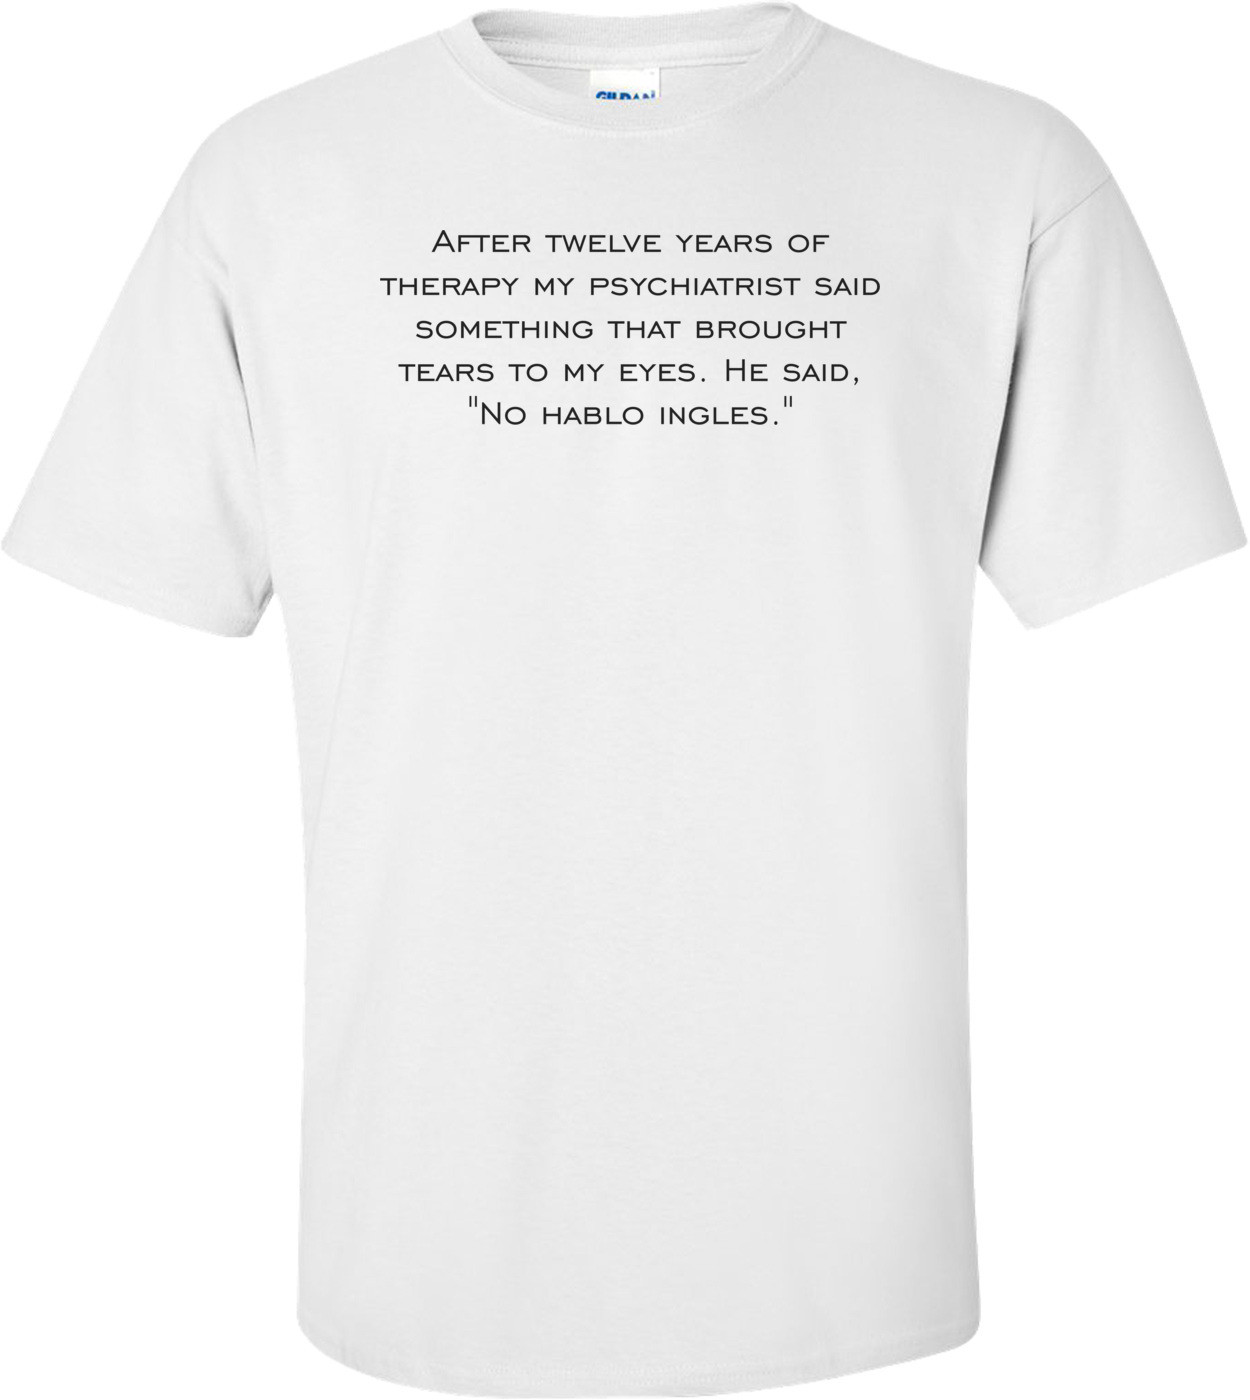 """After twelve years of therapy my psychiatrist said something that brought tears to my eyes. He said, """"No hablo ingles."""" Shirt"""